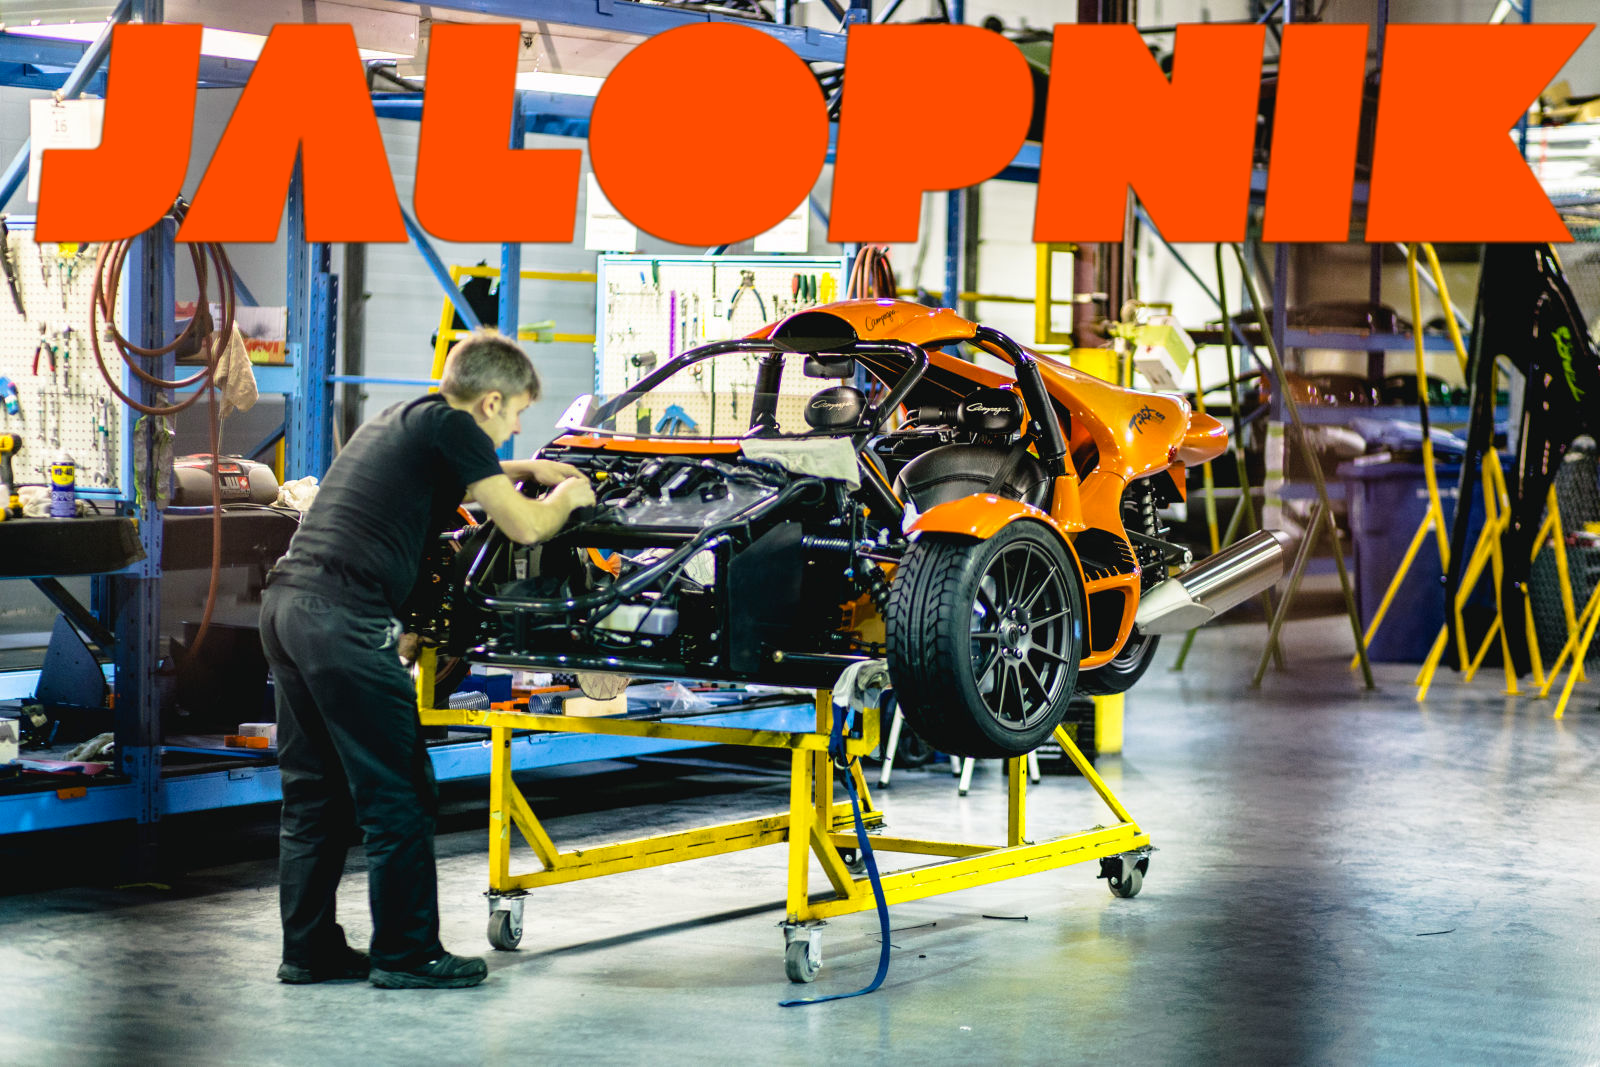 Jalopnik: One Of The Craziest Things On Three Wheels Comes From This Canadian Factory